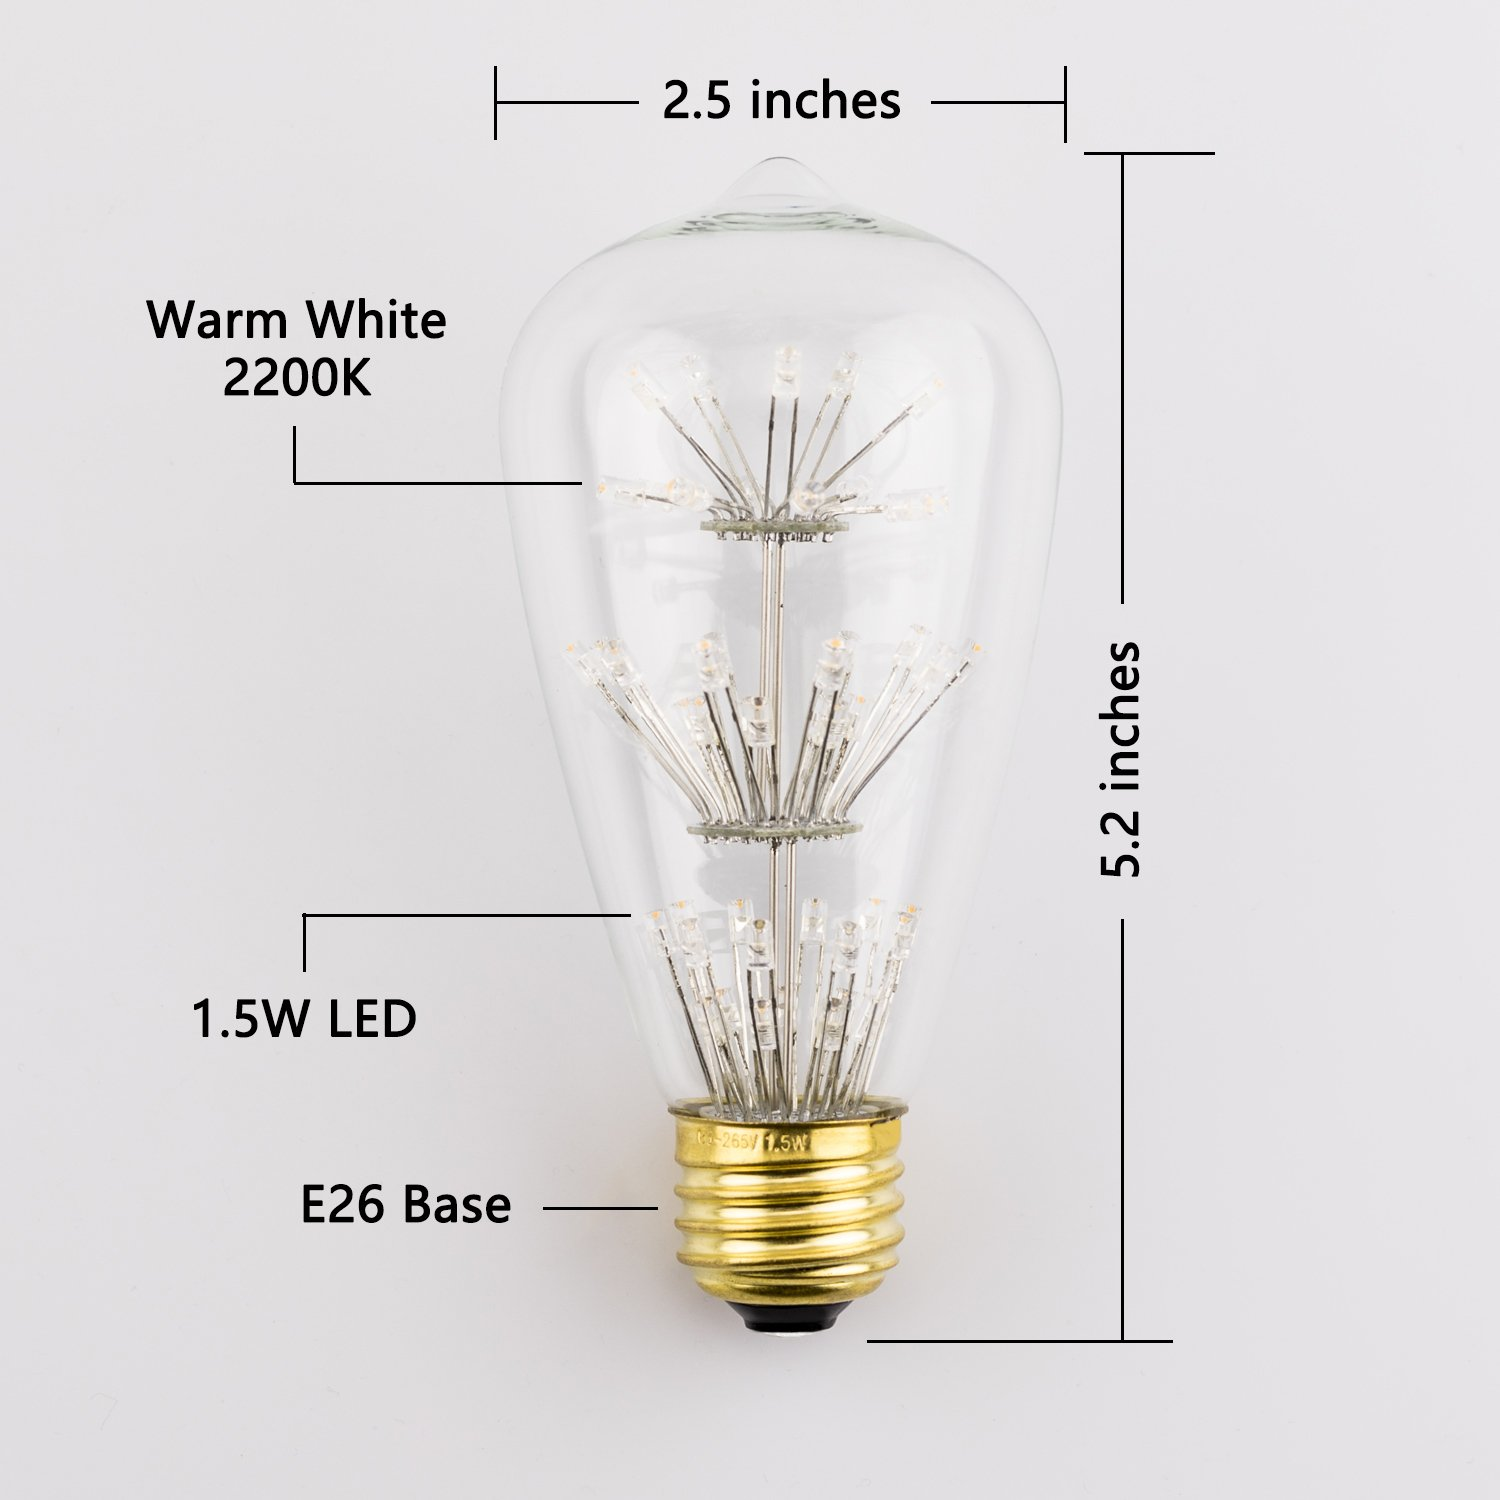 Vintage Starry Edison Led Light Bulb Coidak Antique Decorative Emitting Diode Circuit Of The Temperature Control Squirrel Cage E26 St64 15w 2400k Warm White Not Dimmable